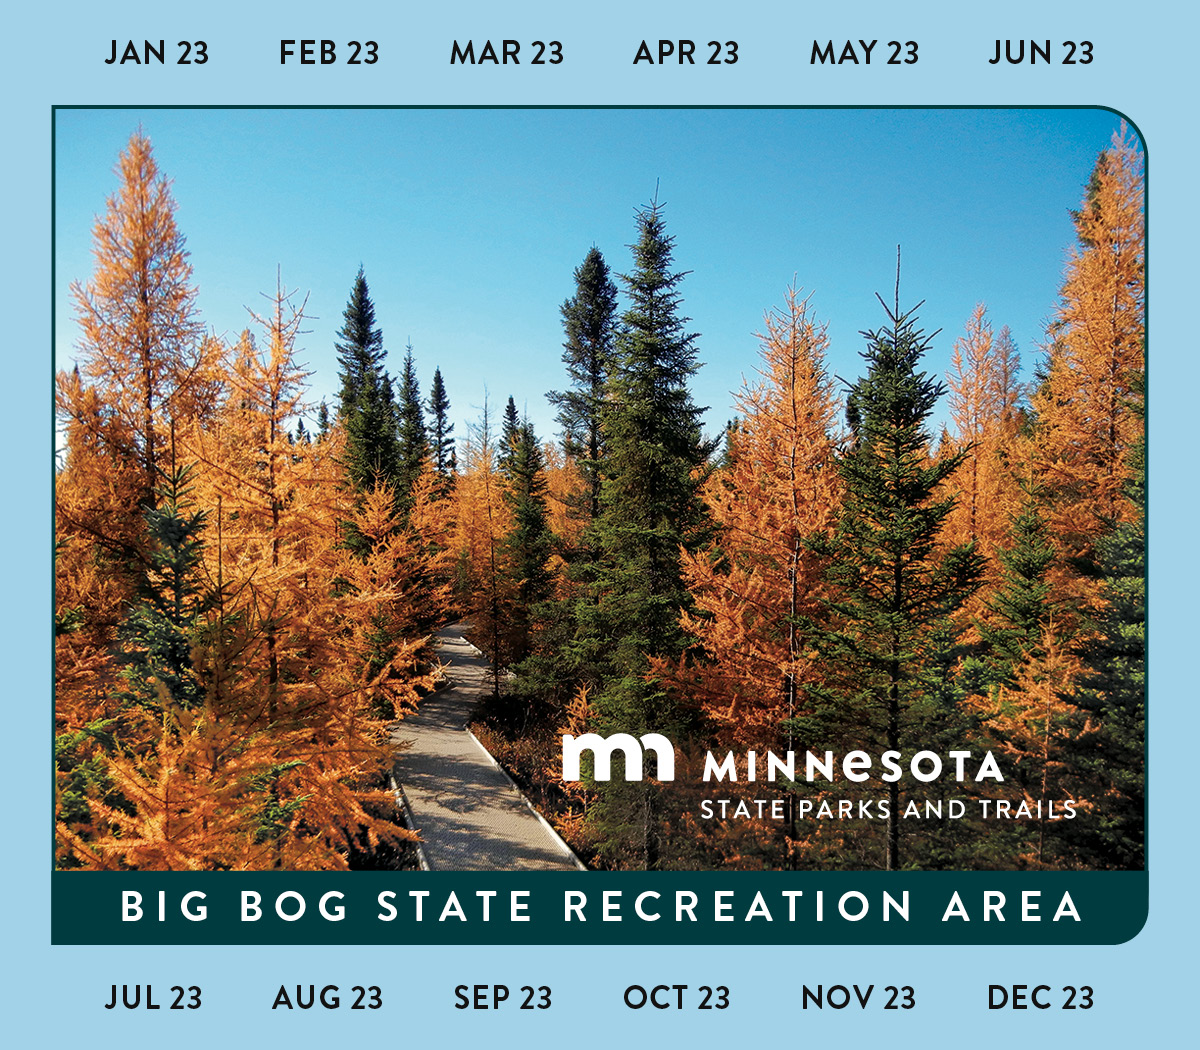 Image of the 2013 Minnesota State Park Annual Permit